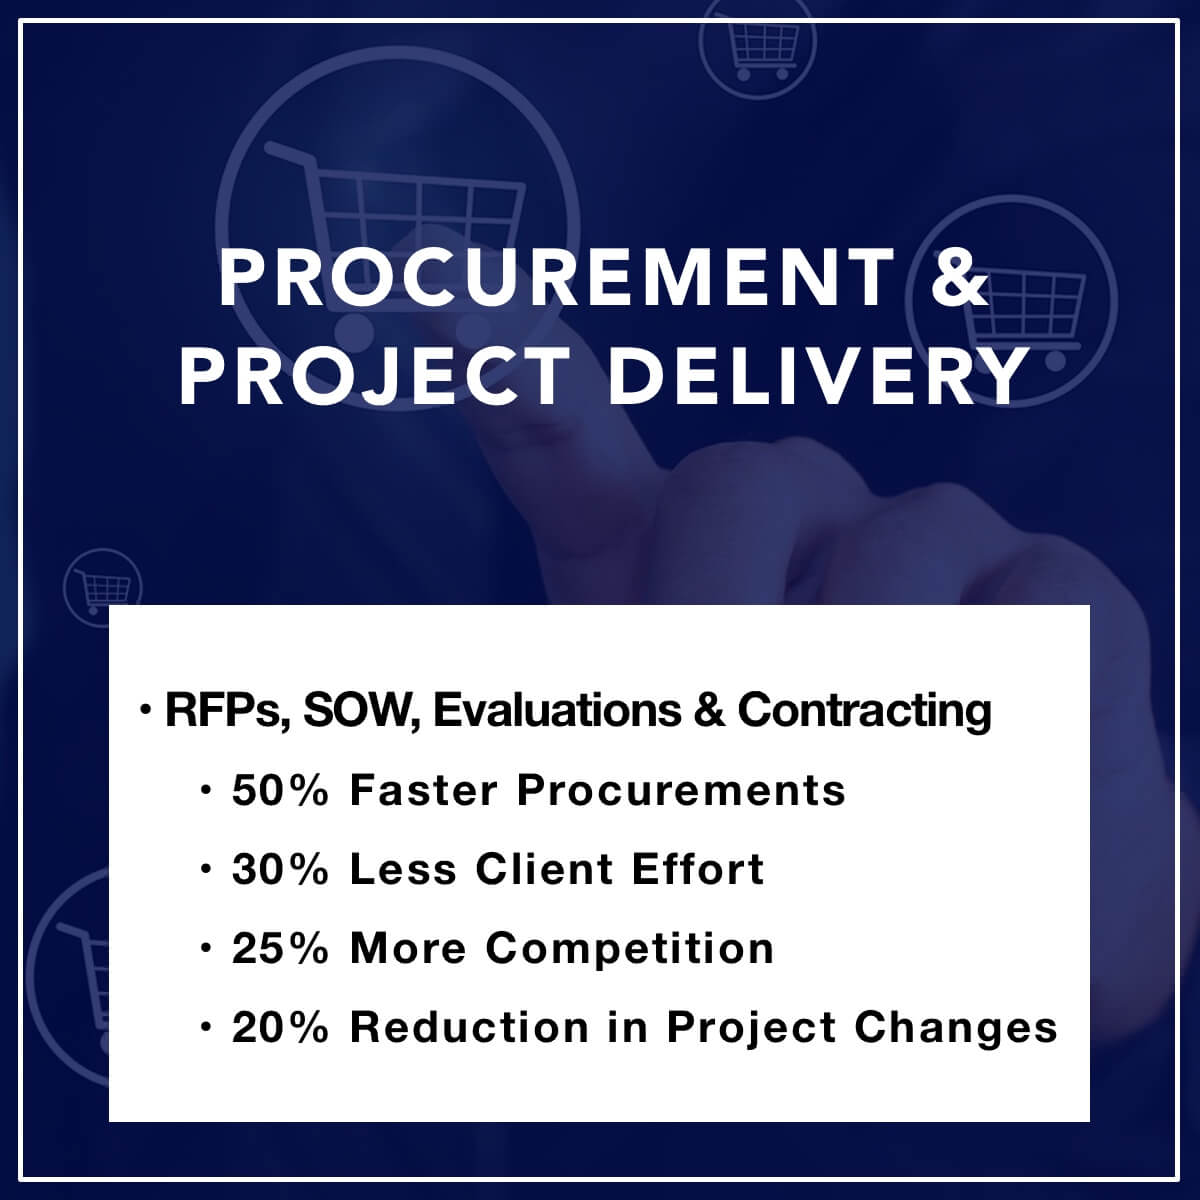 Procurement & Project Delivery